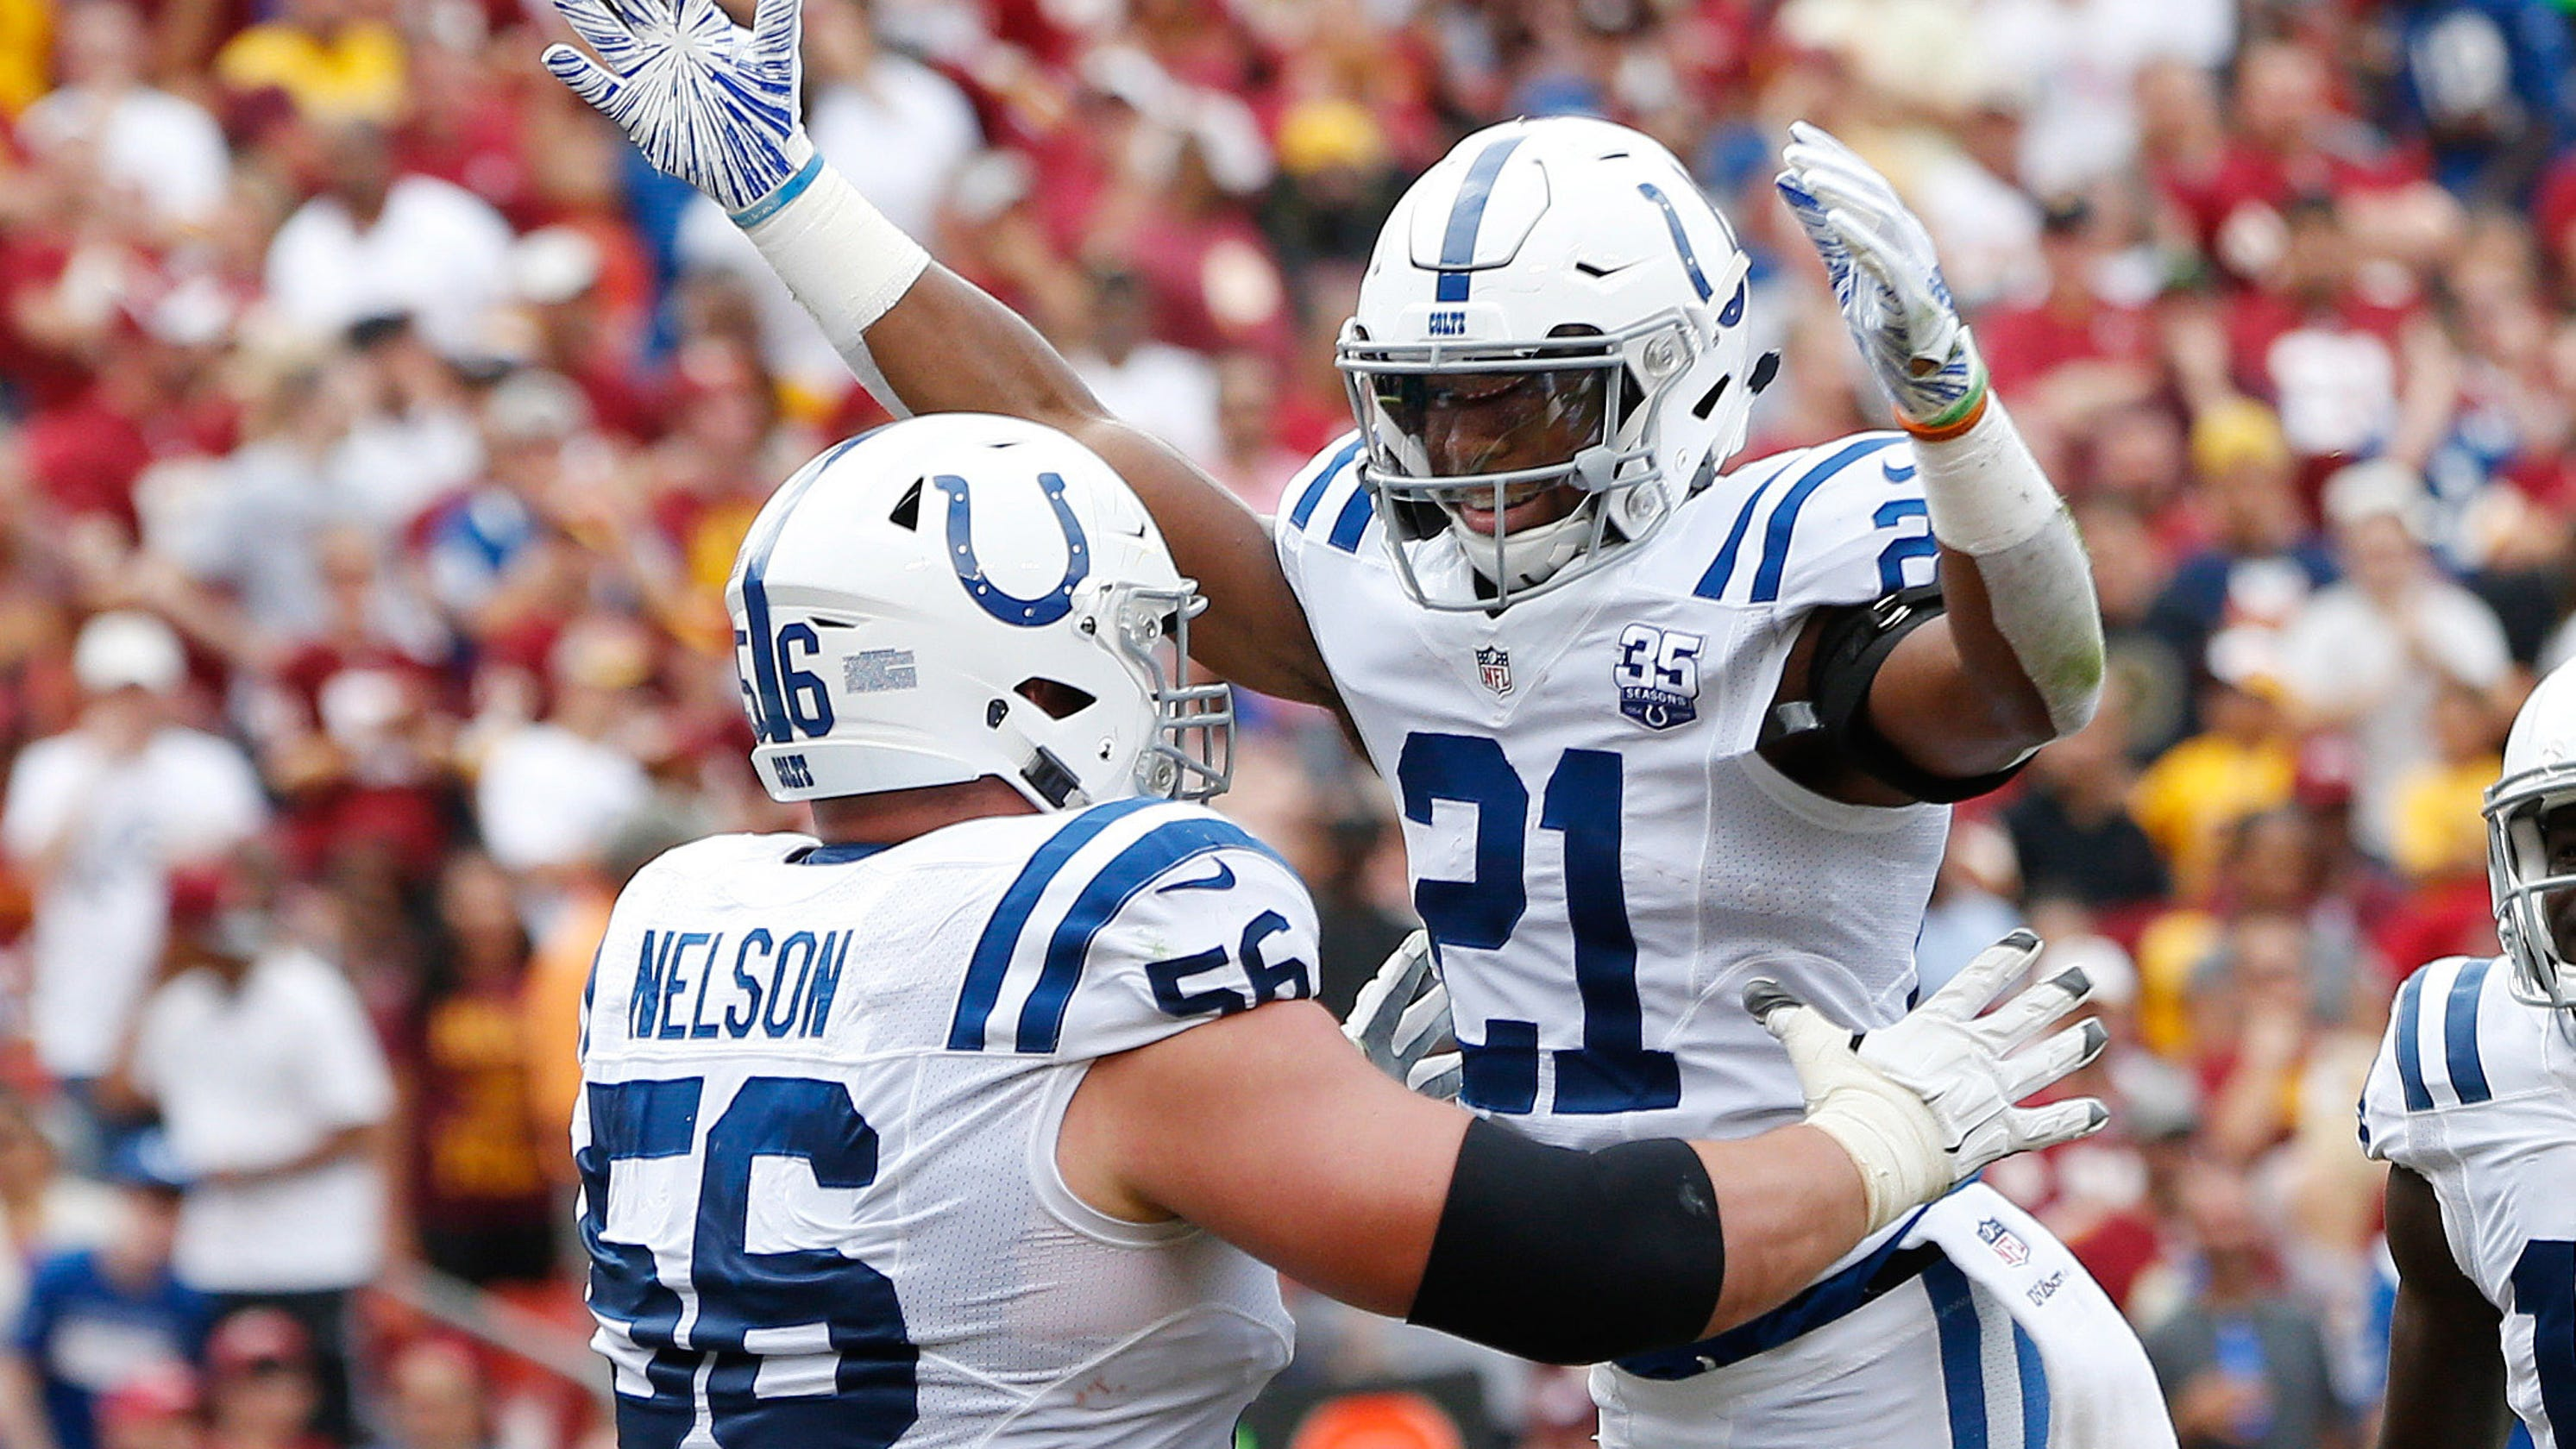 newest fb21c cd583 NFL: Former RBC star Quenton Nelson selected to Pro Bowl ...